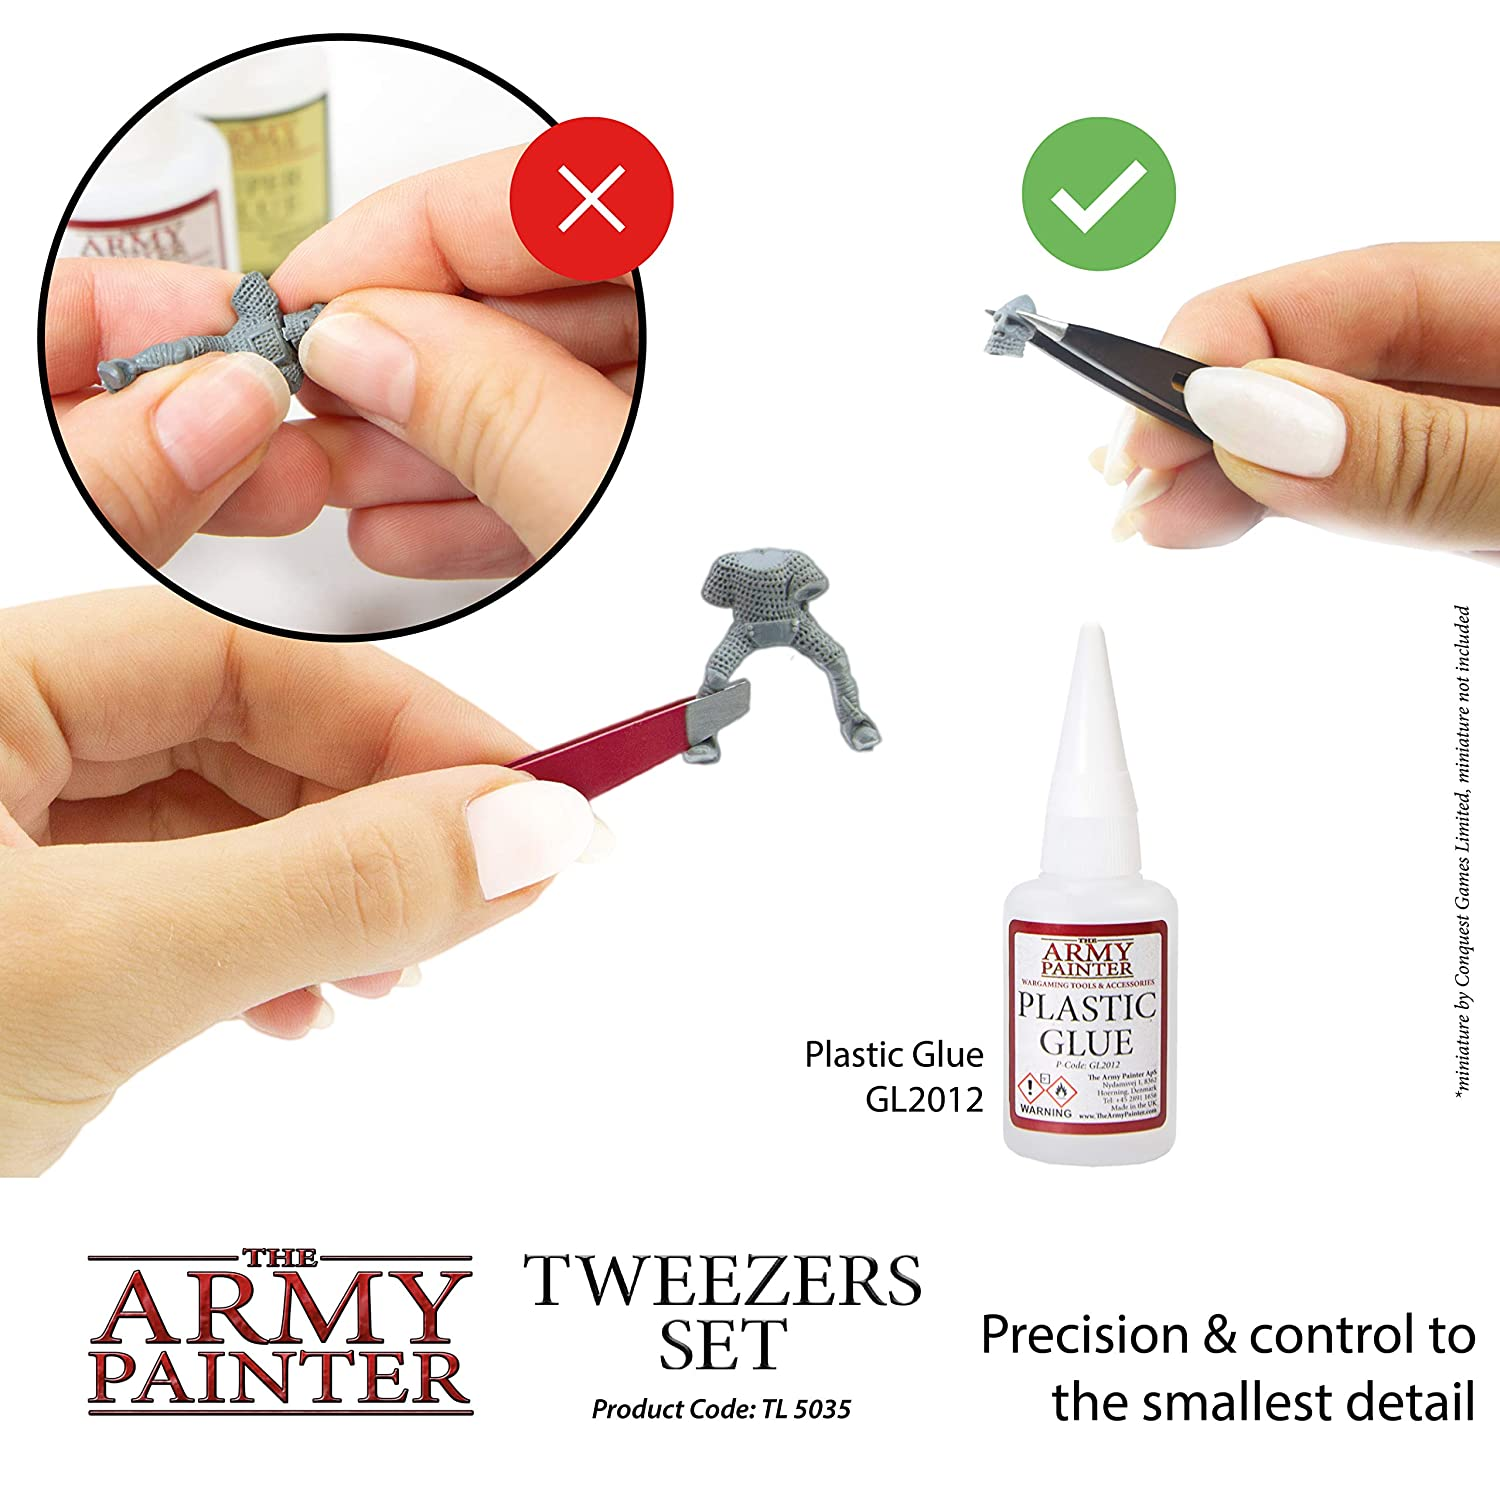 Pointy Tip Black The Army Painter 2-Piece Precision Tweezers Set of Slant Tweezers and Pointed Tweezers Tweezer Set for Assembling Miniatures: 95 mm Flat Tip Red and 103 mm